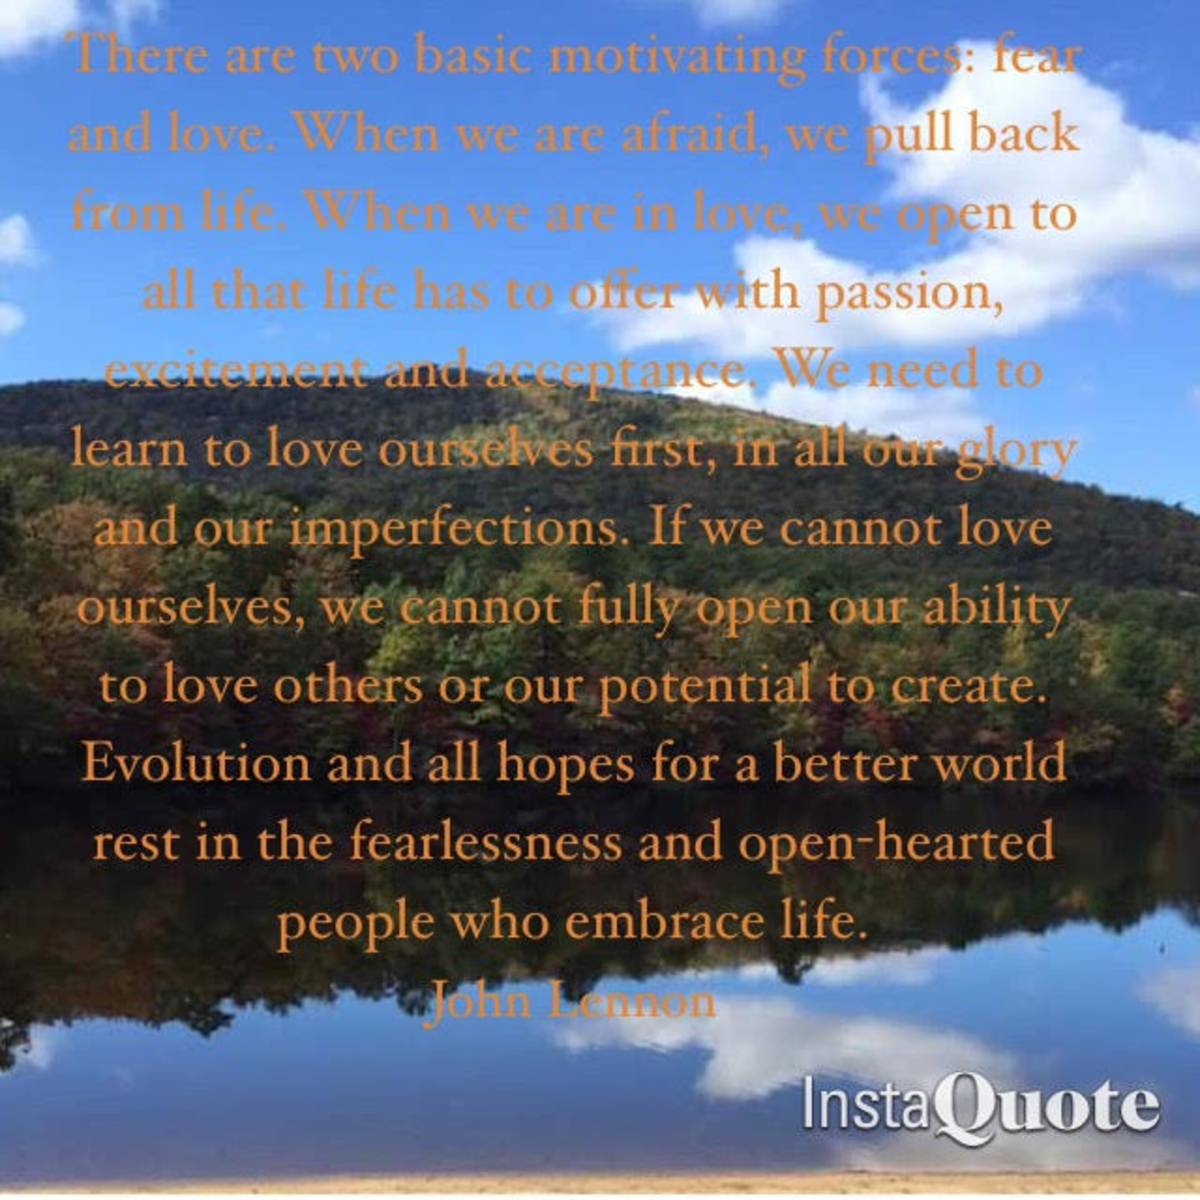 Created with InstaQuote App